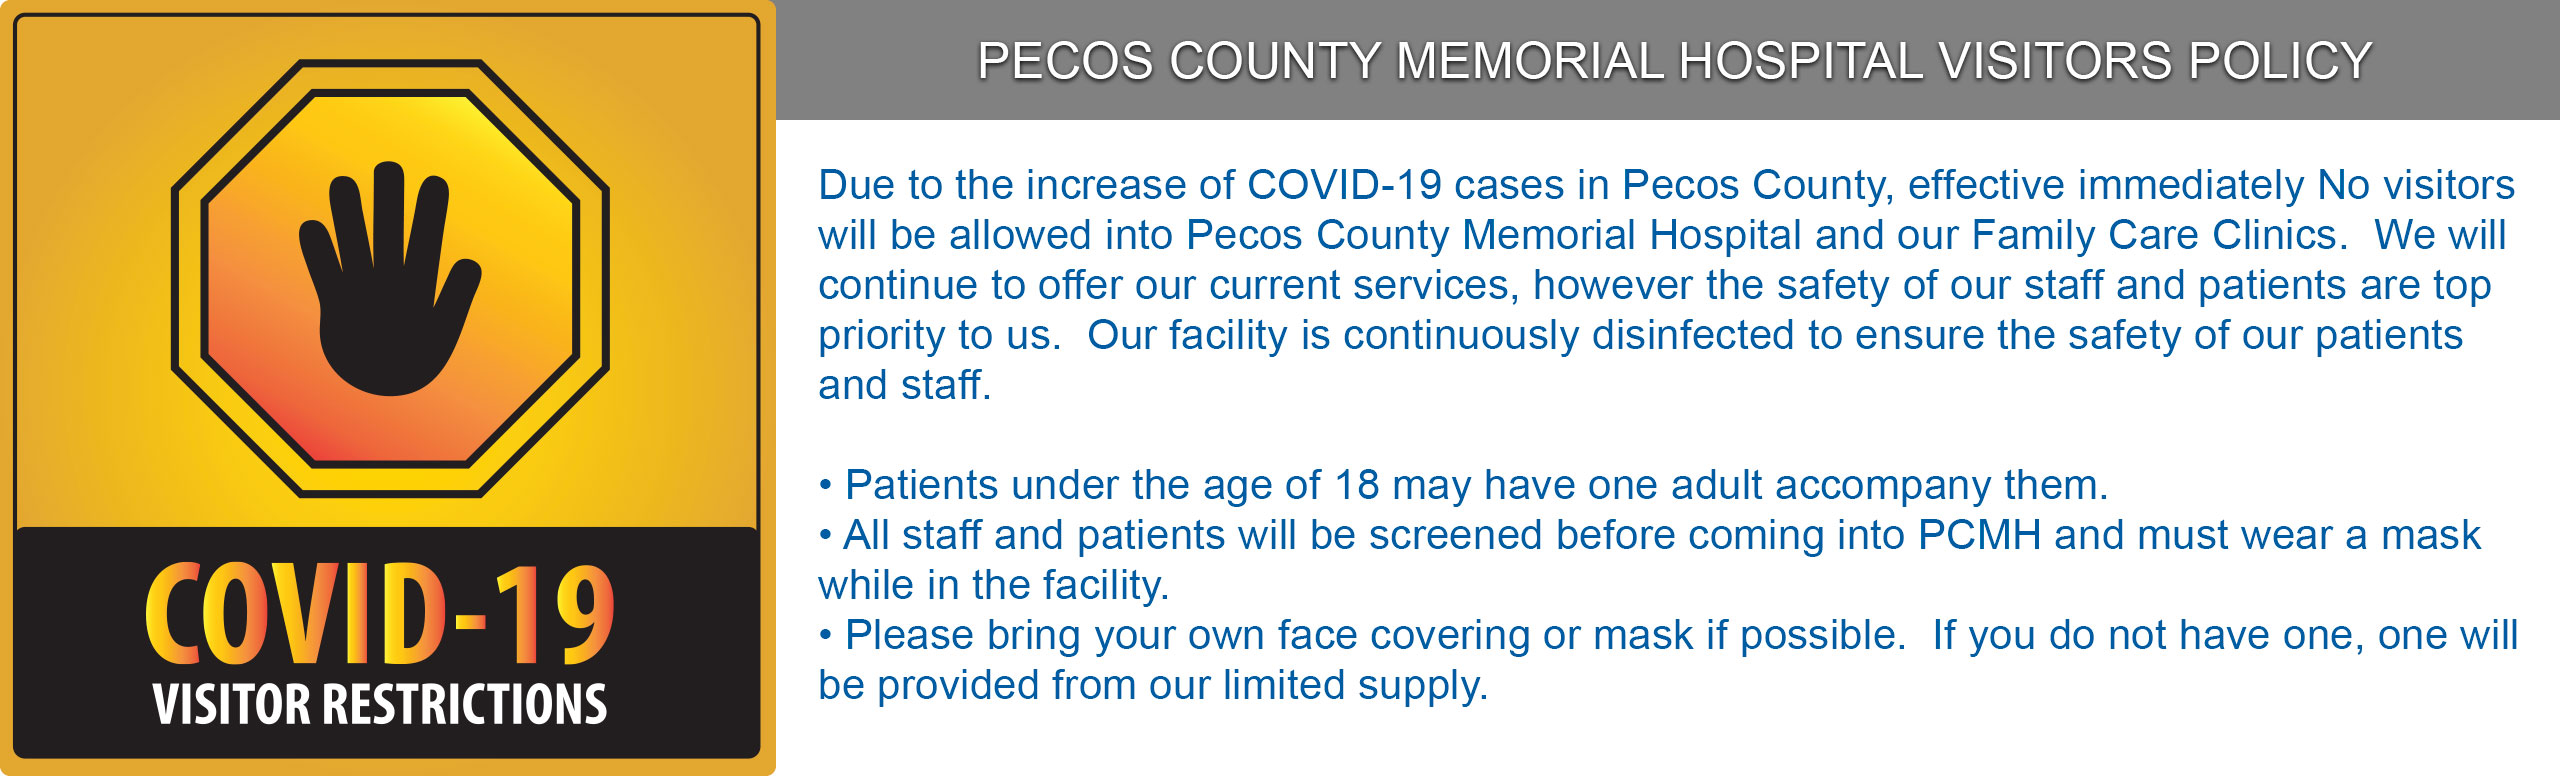 COVID-19 Visitor Restrictions  PECOS COUNTY MEMORIAL HOSPITAL VISITORS POLICY  Due to the increase of COVID-19 cases in Pecos County, effective immediately No visitors will be allowed into Pecos County Memorial Hospital and our Family Care Clinics.  We will continue to offer our current services, however the safety of our staff and patients are top priority to us.  Our facility is continuously disinfected to ensure the safety of our patients and staff.  • Patients under the age of 18 may have one adult accompany them. • All staff and patients will be screened before coming into PCMH and must wear a mask while in the facility. • Please bring your own face covering or mask if possible.  If you do not have one, one will be provided from our limited supply.